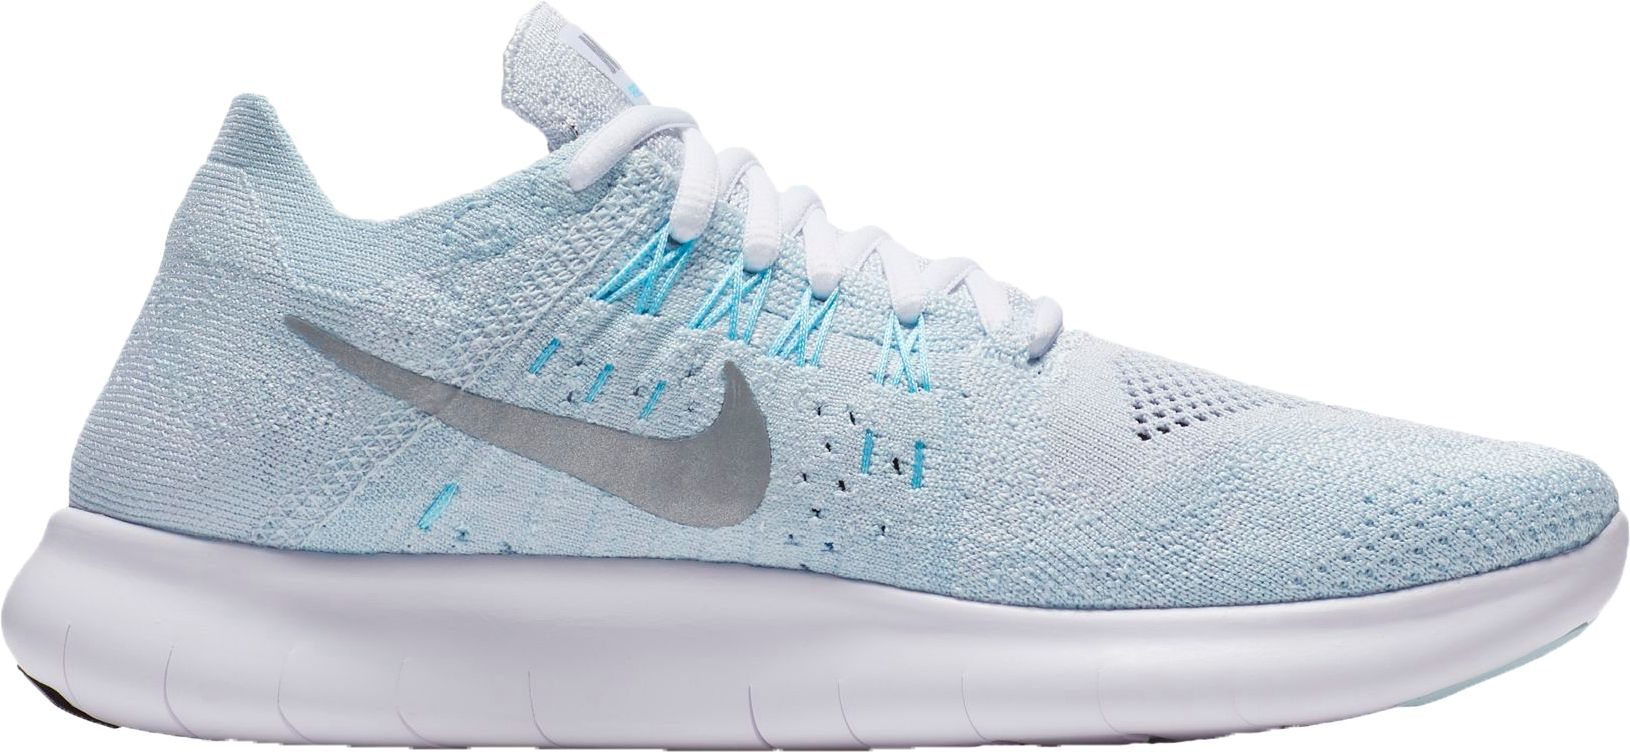 nike running shoes flyknit. nike women\u0027s free rn flyknit 2017 running shoes | dick\u0027s sporting goods